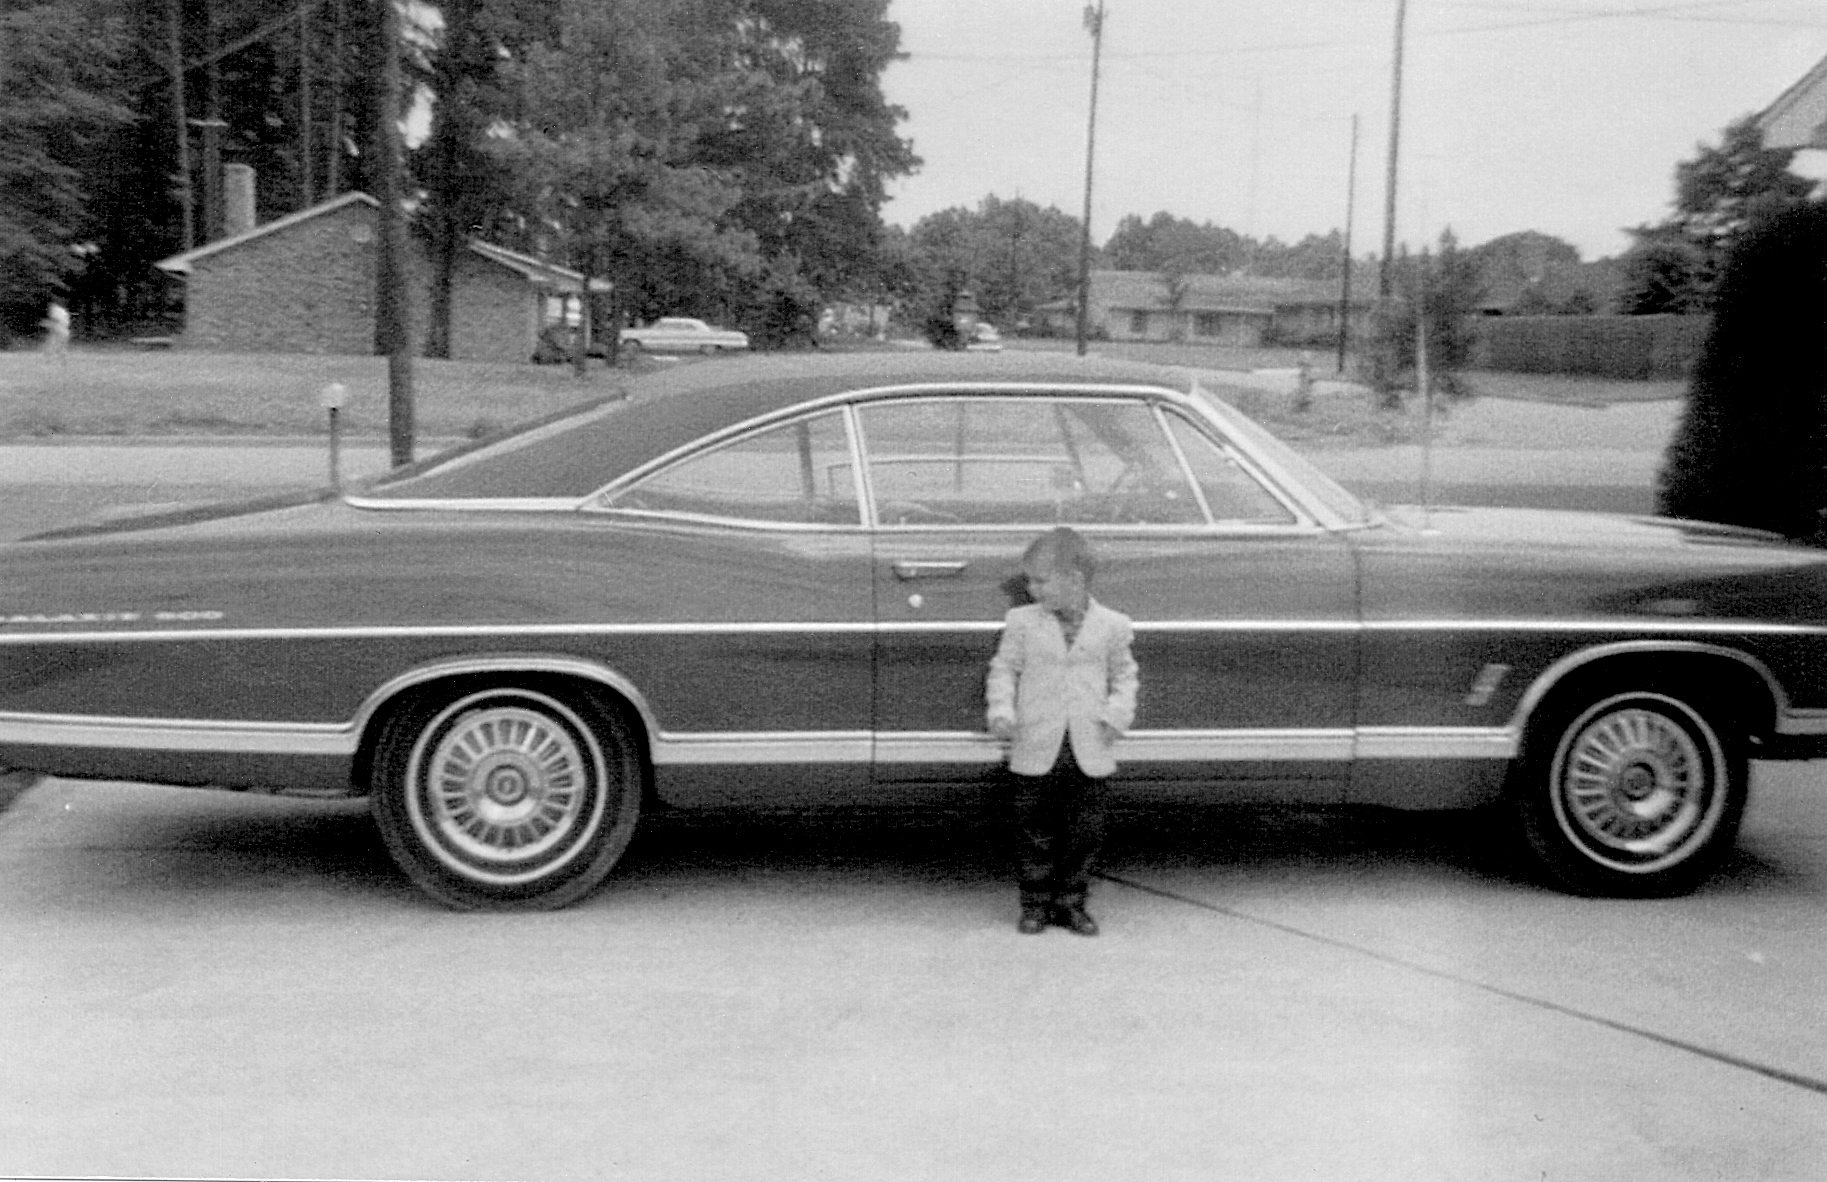 1967 Ford Galaxie 500 current owner with car as a child